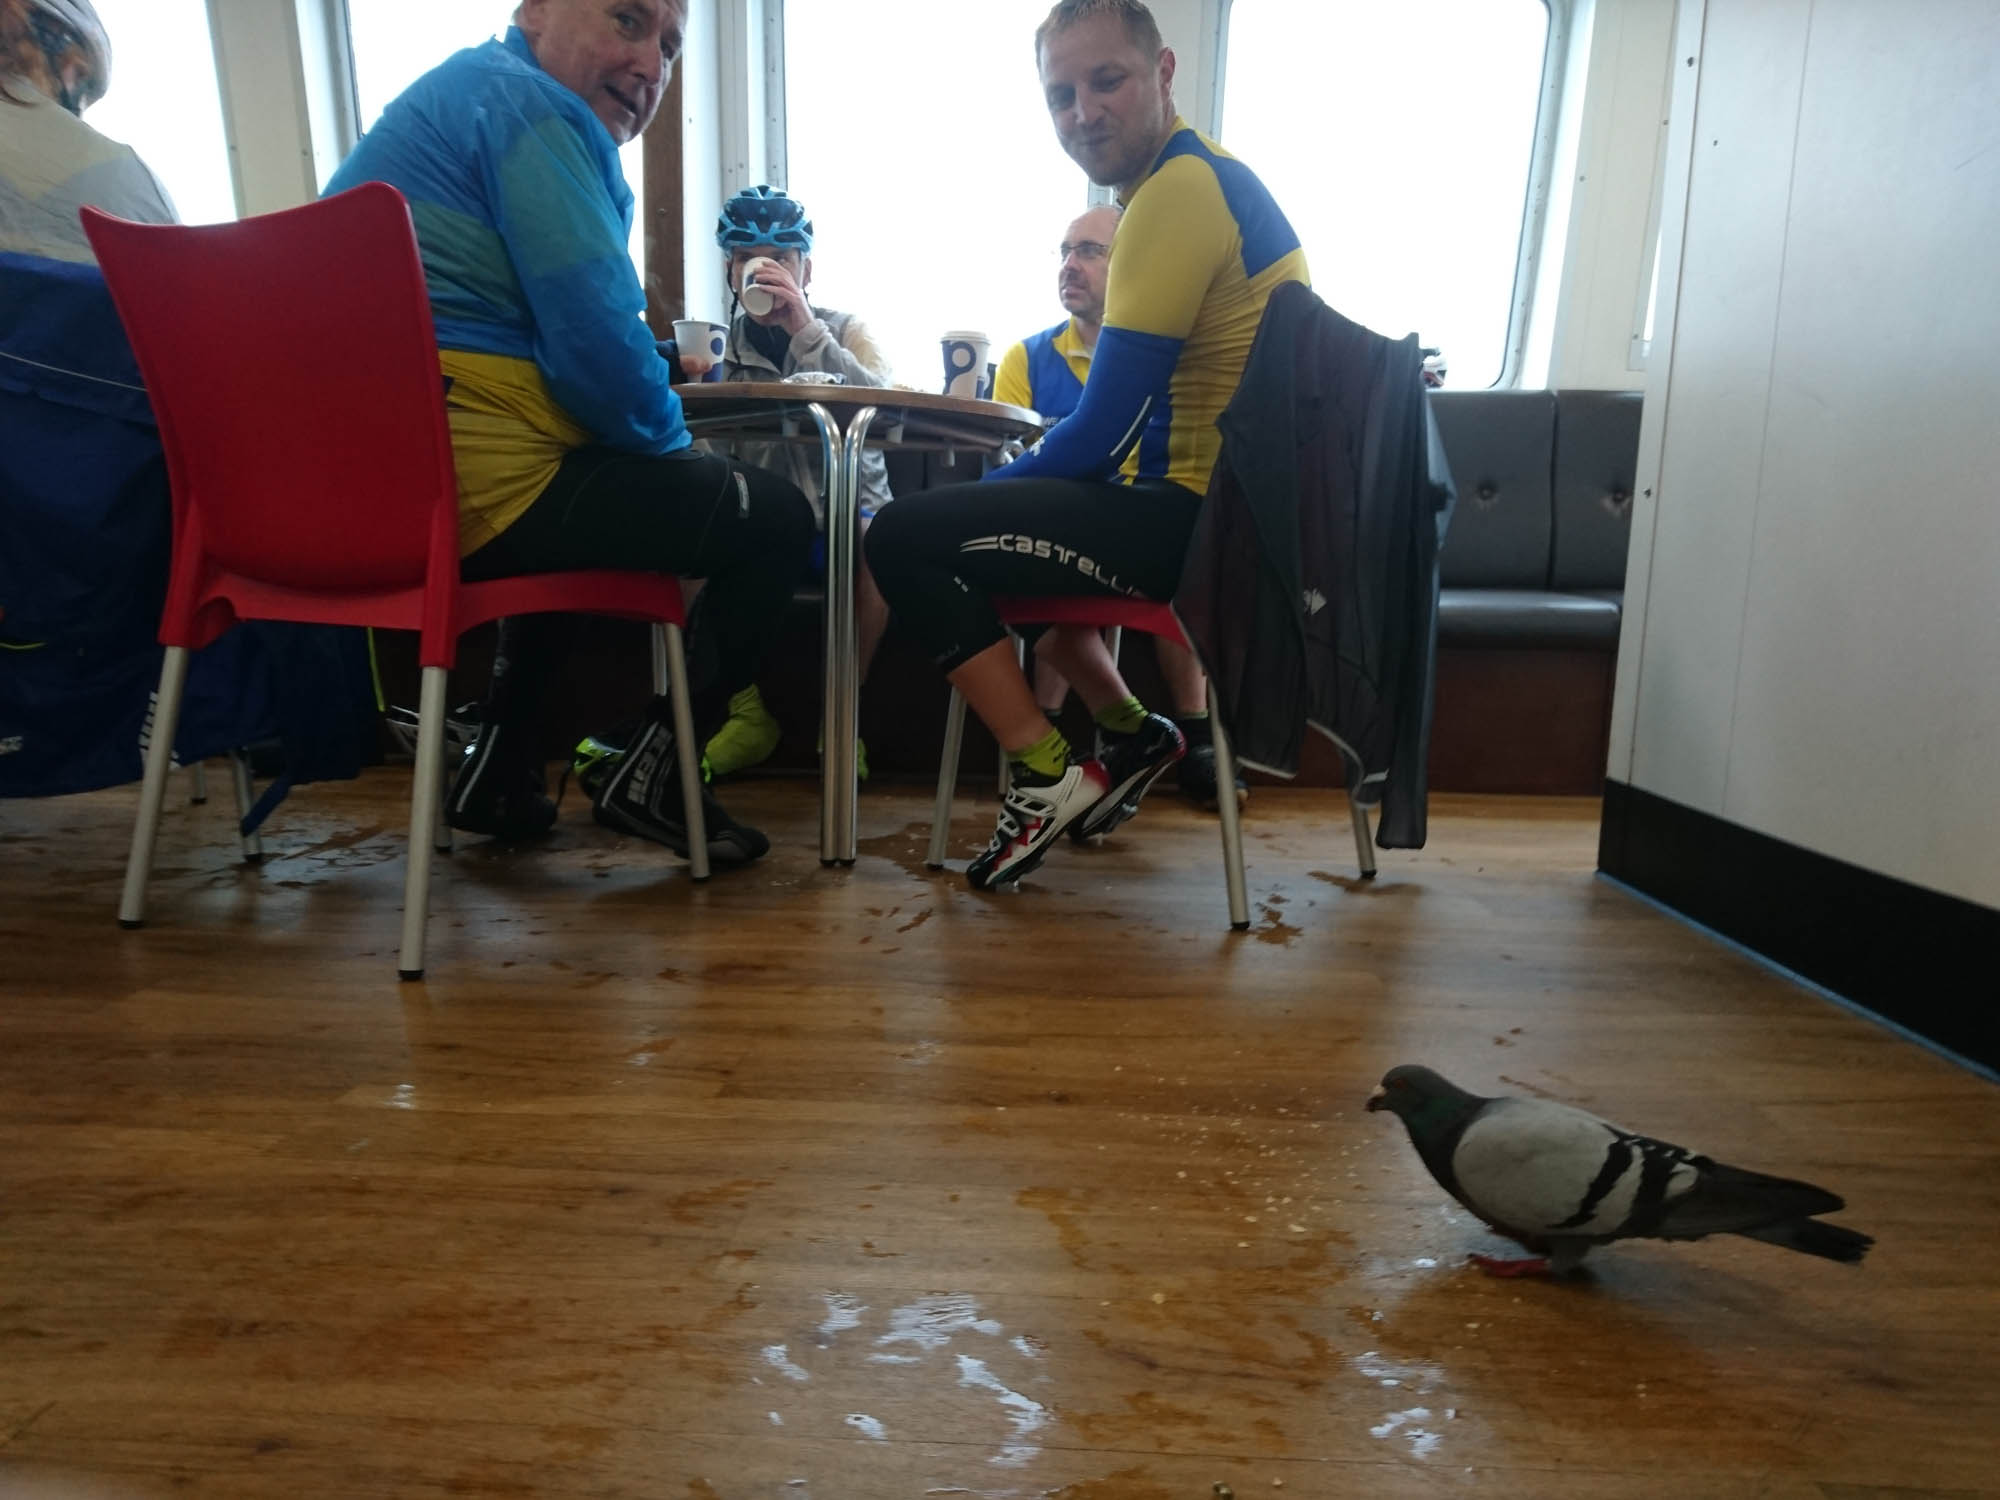 Freeloading pigeon joins Matt and Jim in a relaxed moment on the crossing, sharing jokes and anecdotes.